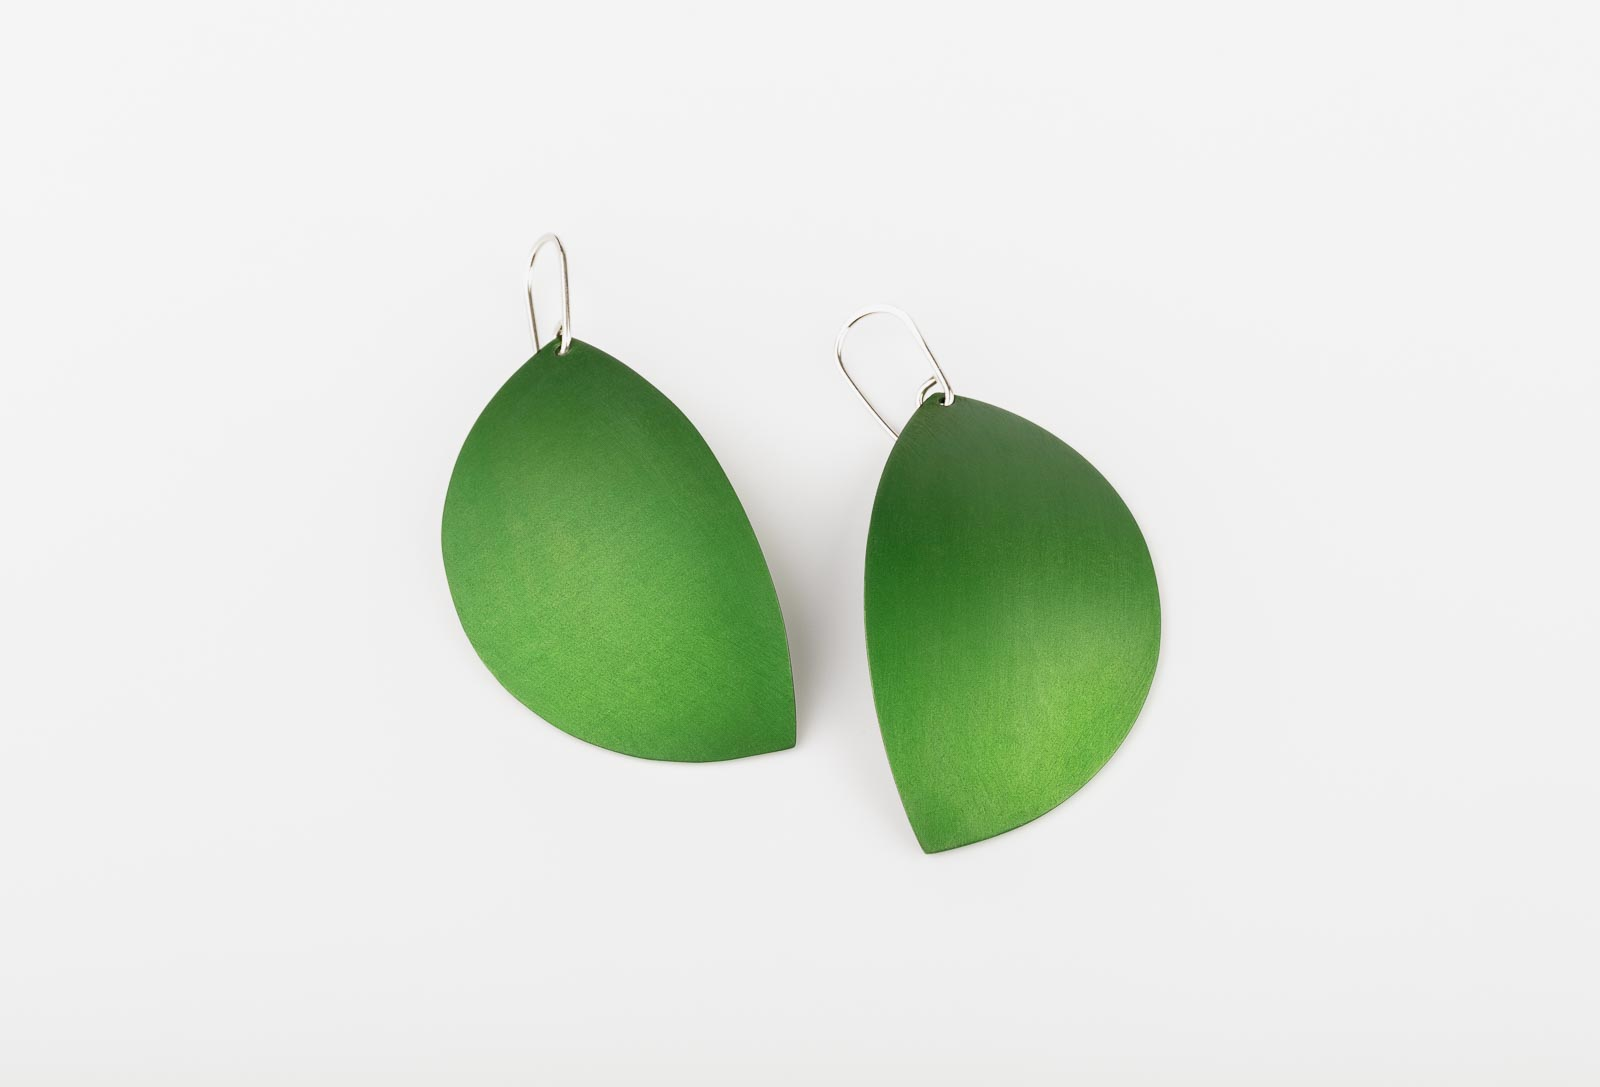 Kalinowski 2019 Collection Green leaves earrings